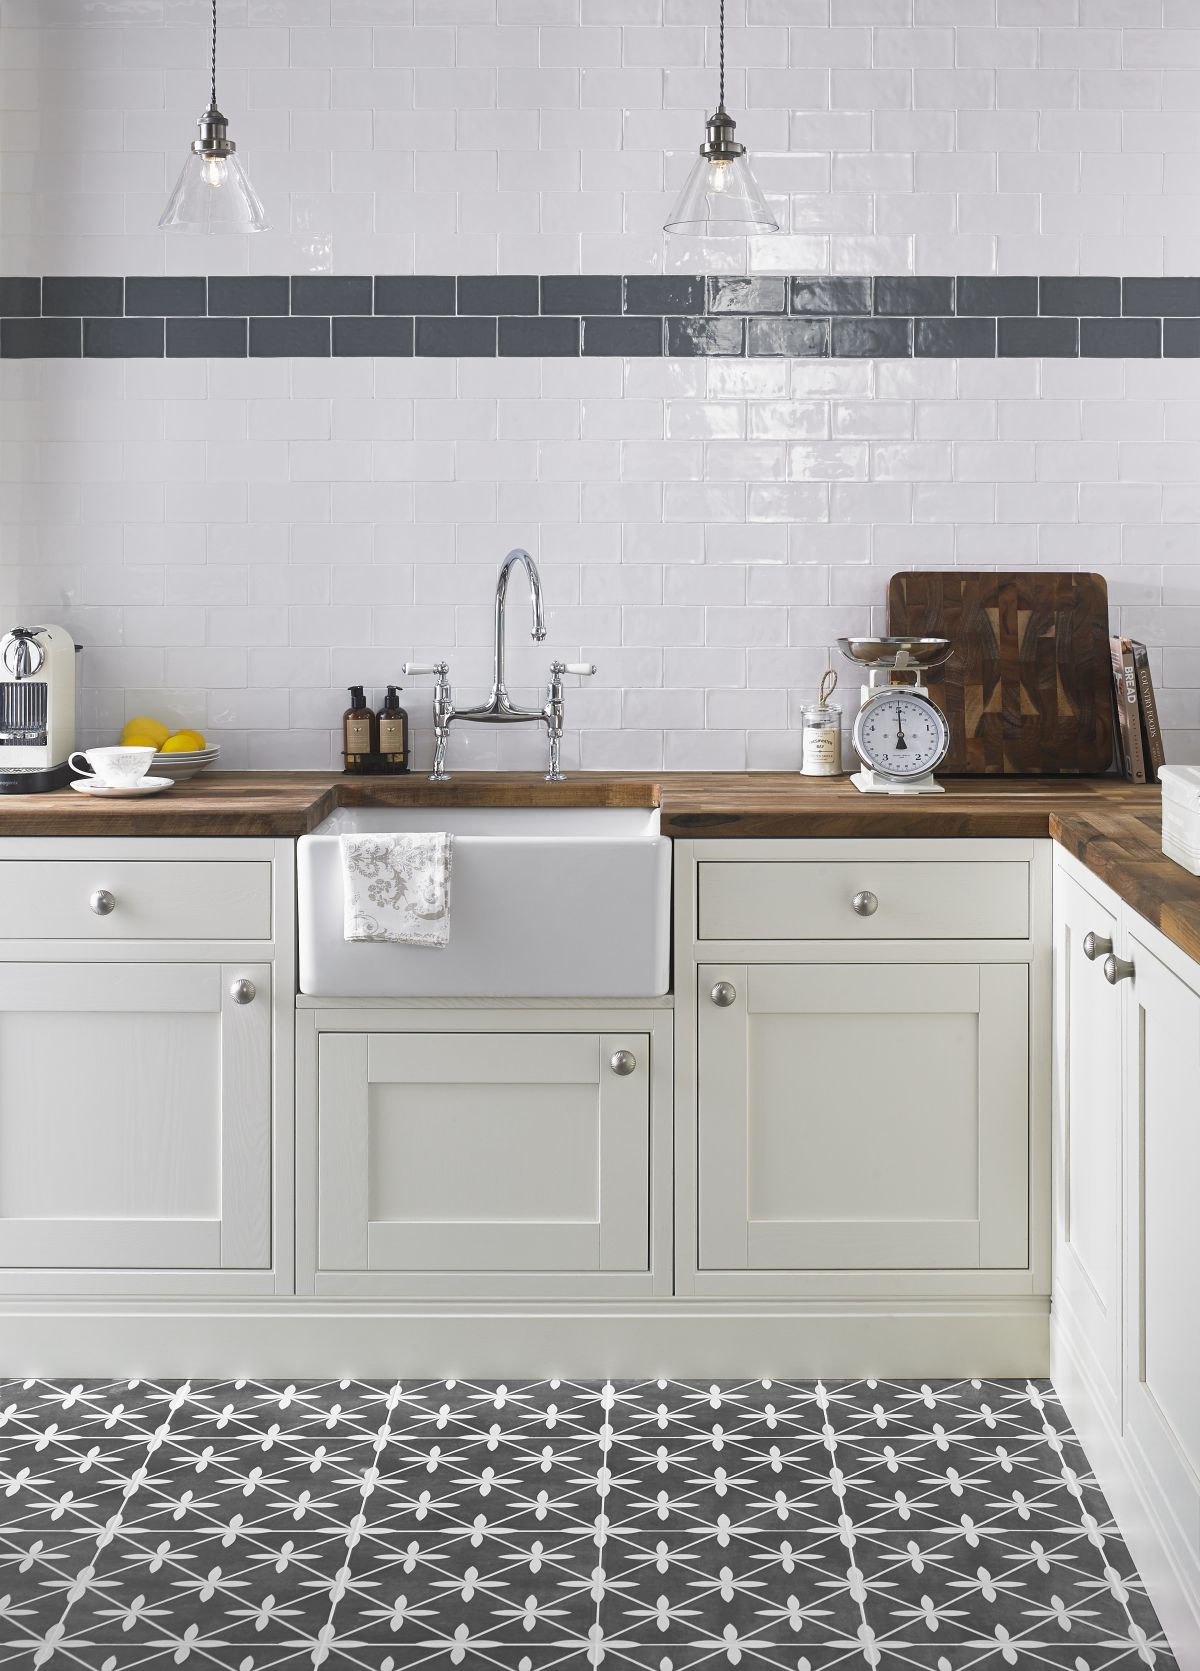 Kitchens On A Budget 17 Ways To Design A Stylish Space Real Homes